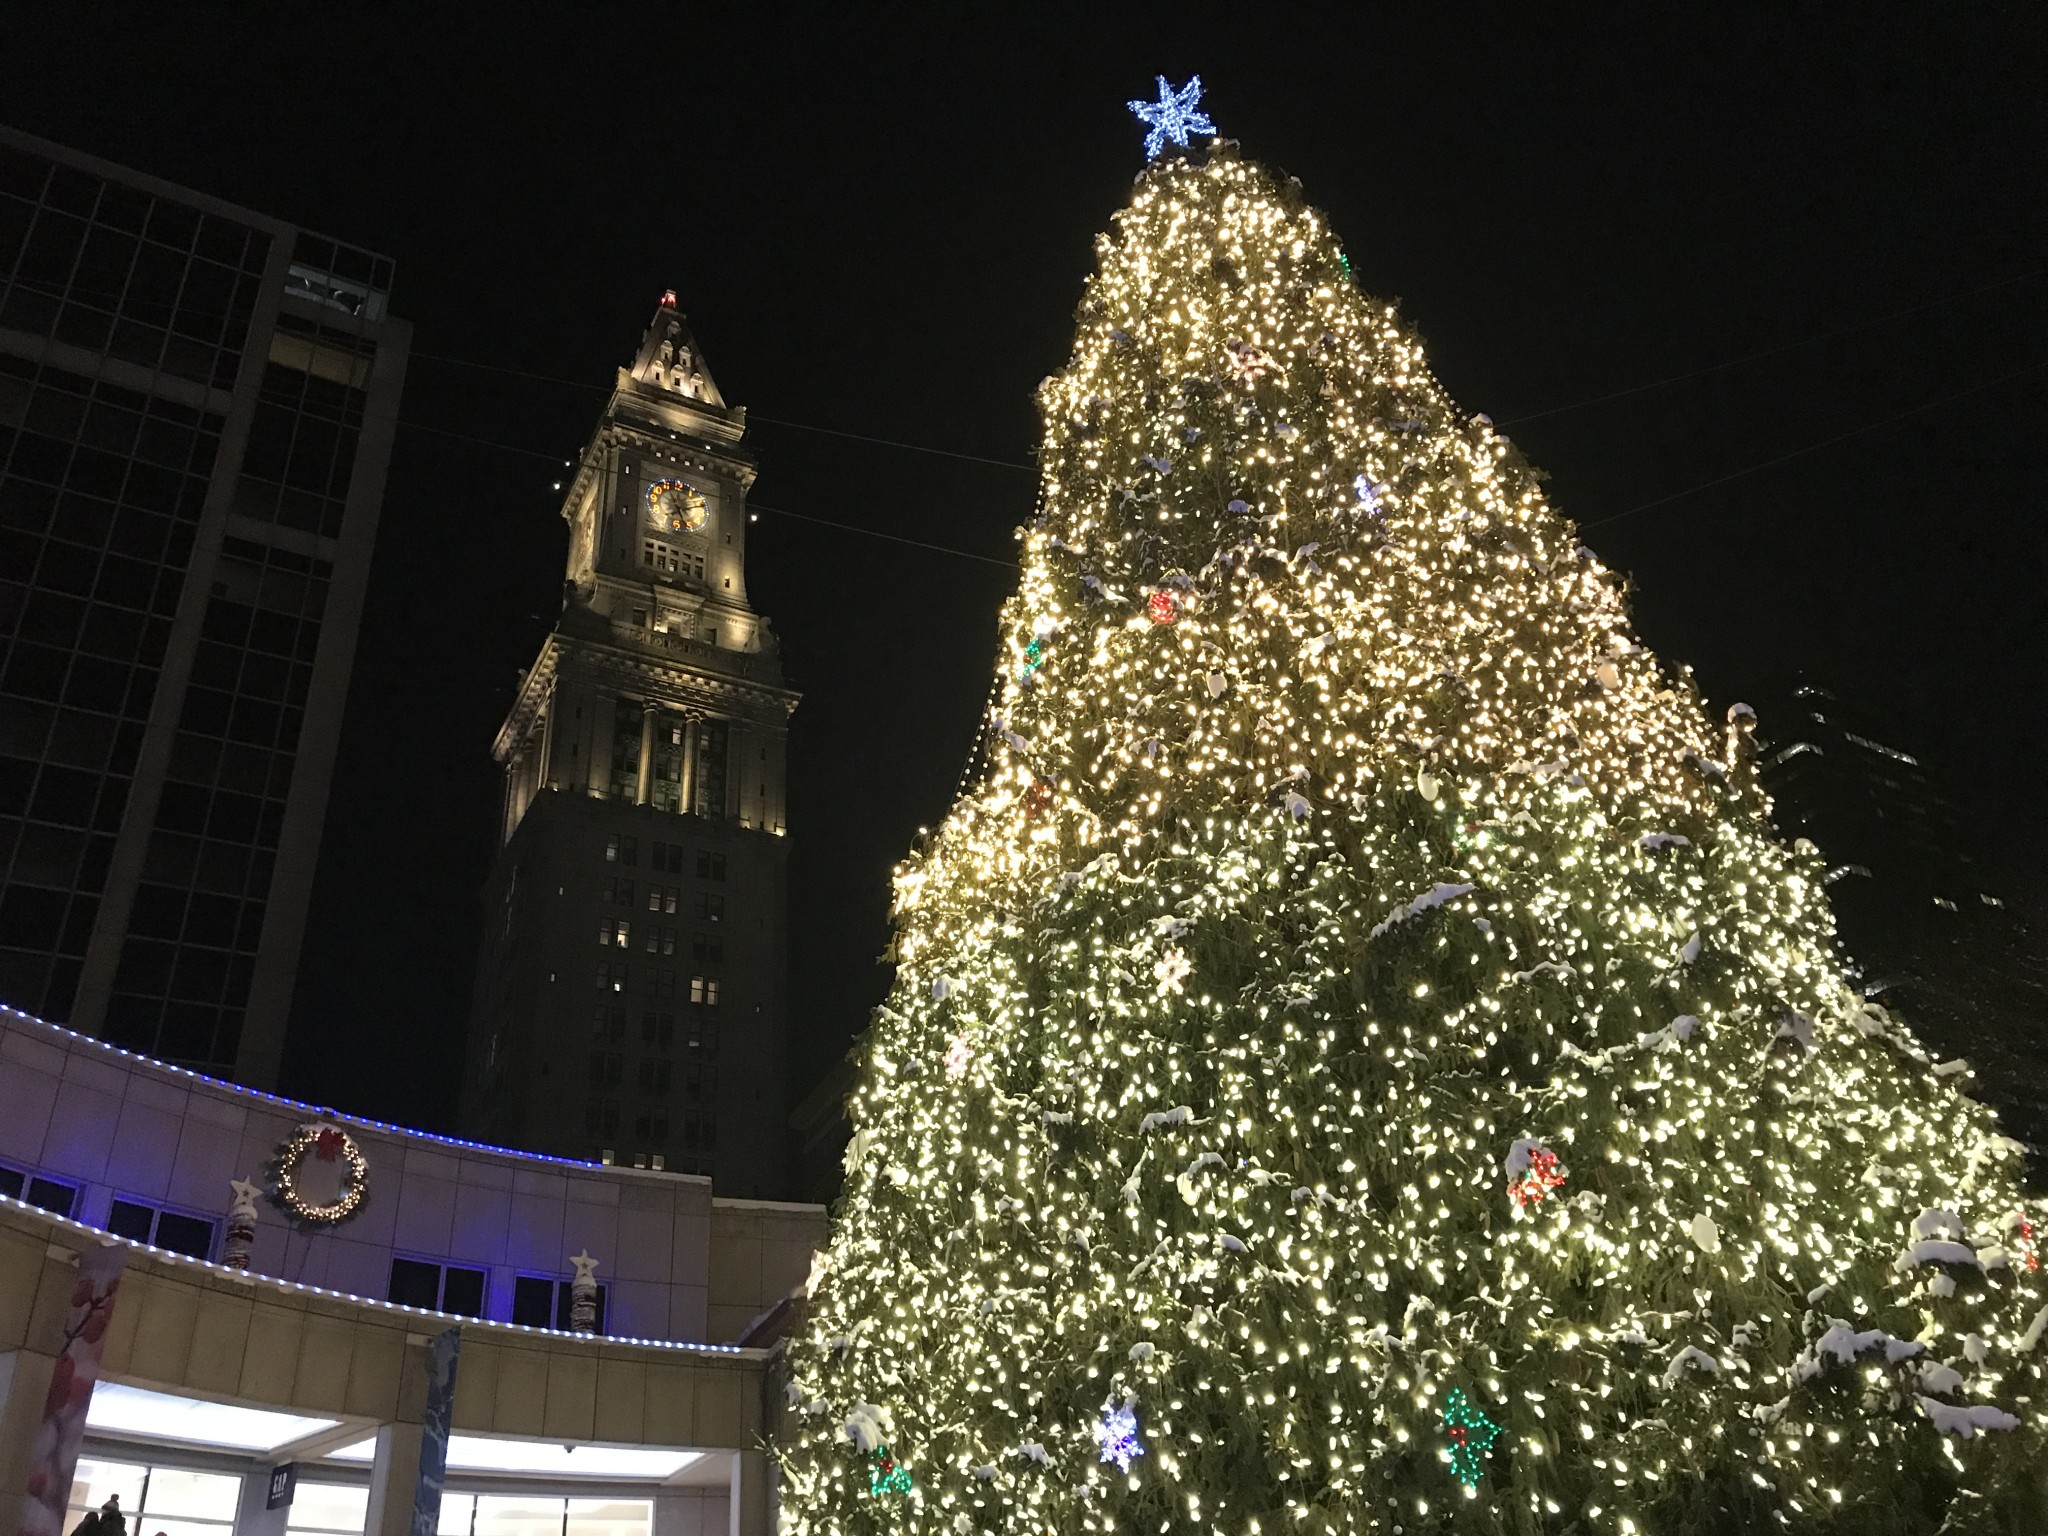 Where to see holiday lights in boston the a lyst a boston based blink at faneuil hall marketplace boston the alyst sciox Images